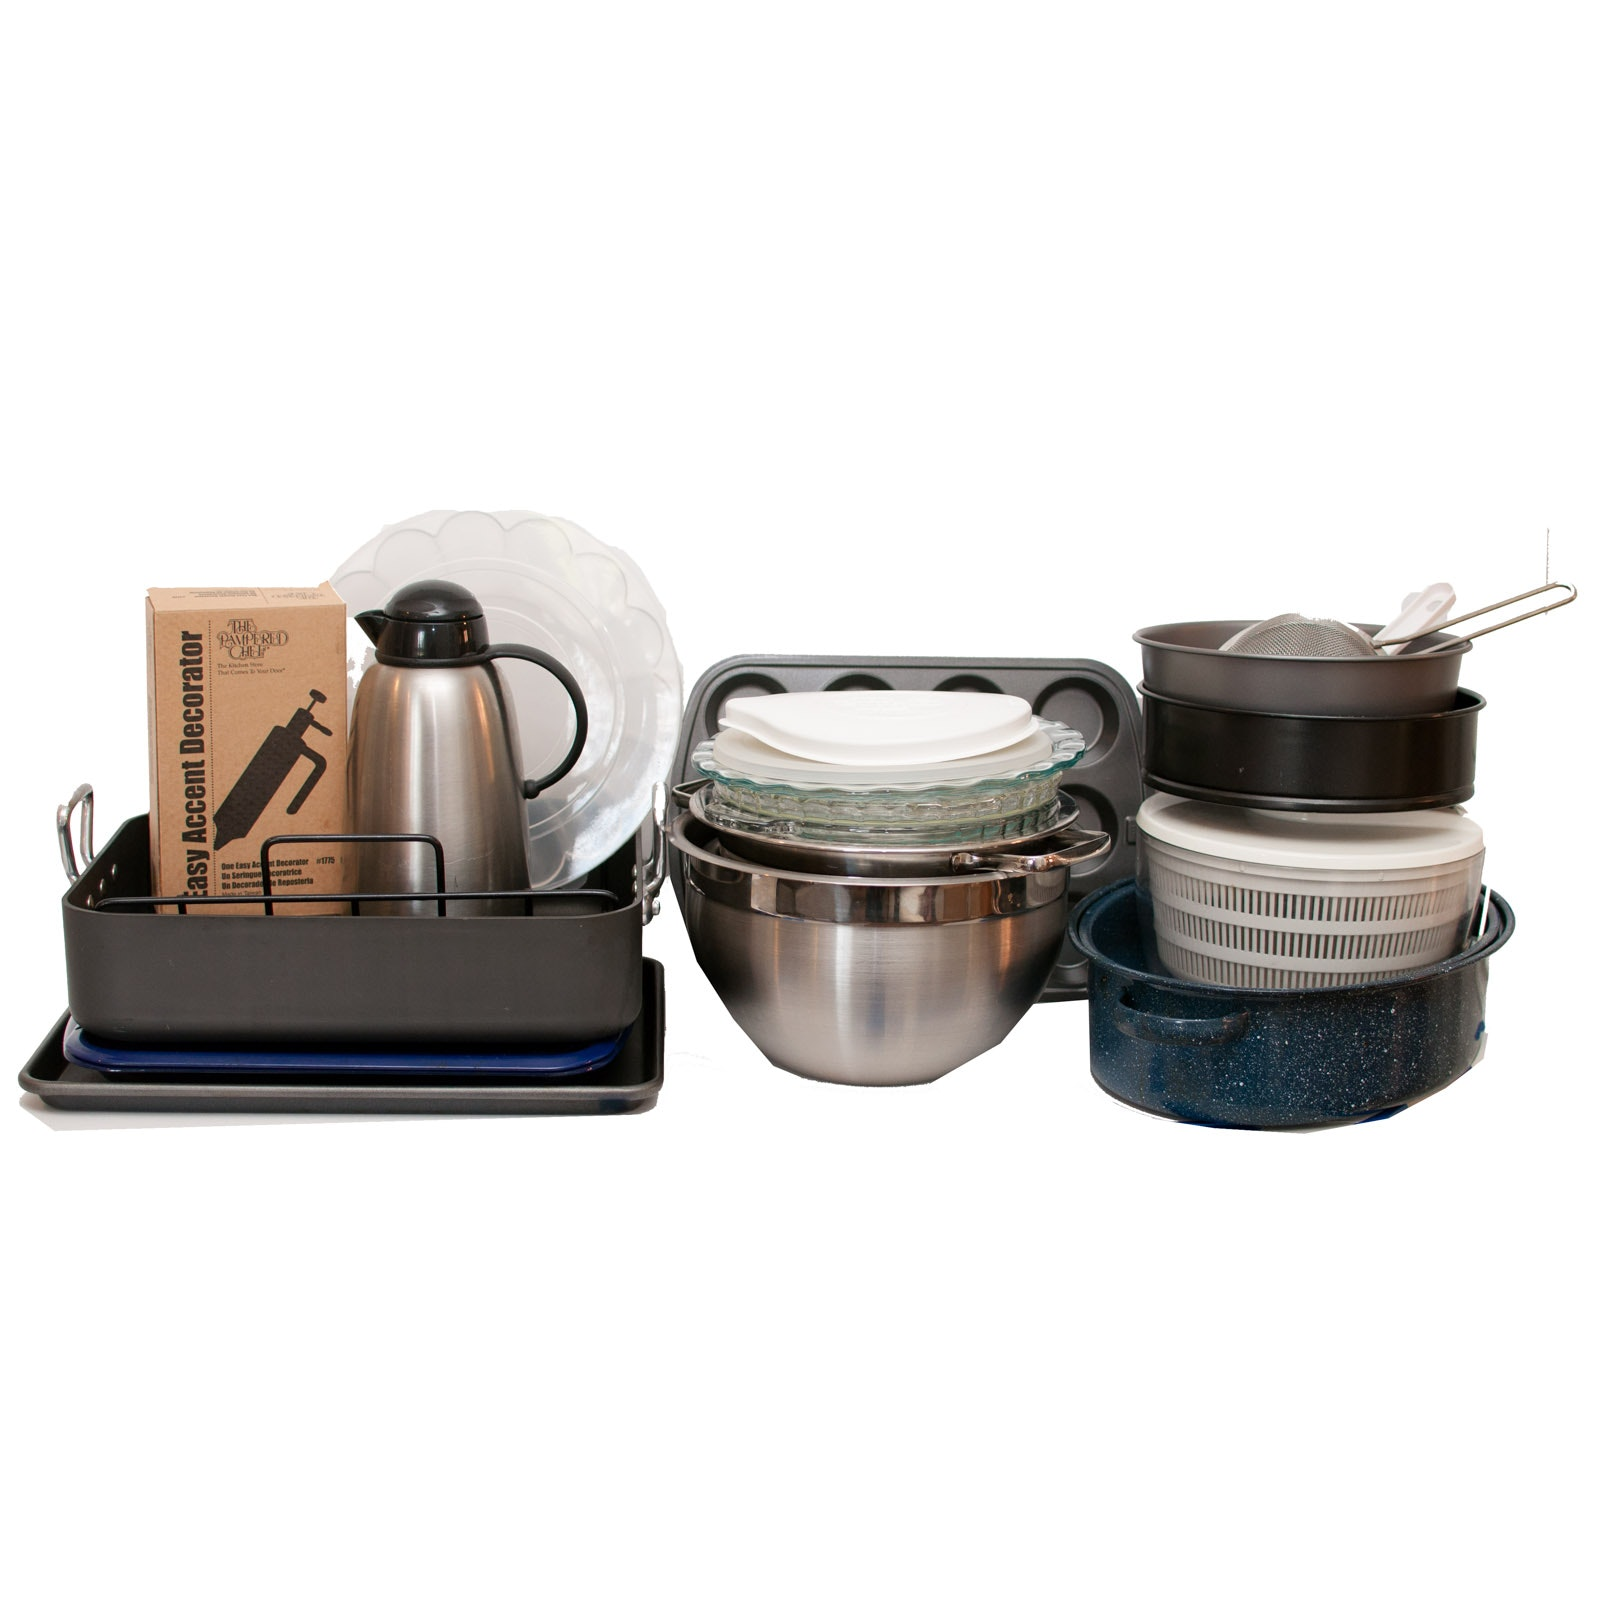 Bakeware Including Kirkland, Pampered Chef, Pyrex and More